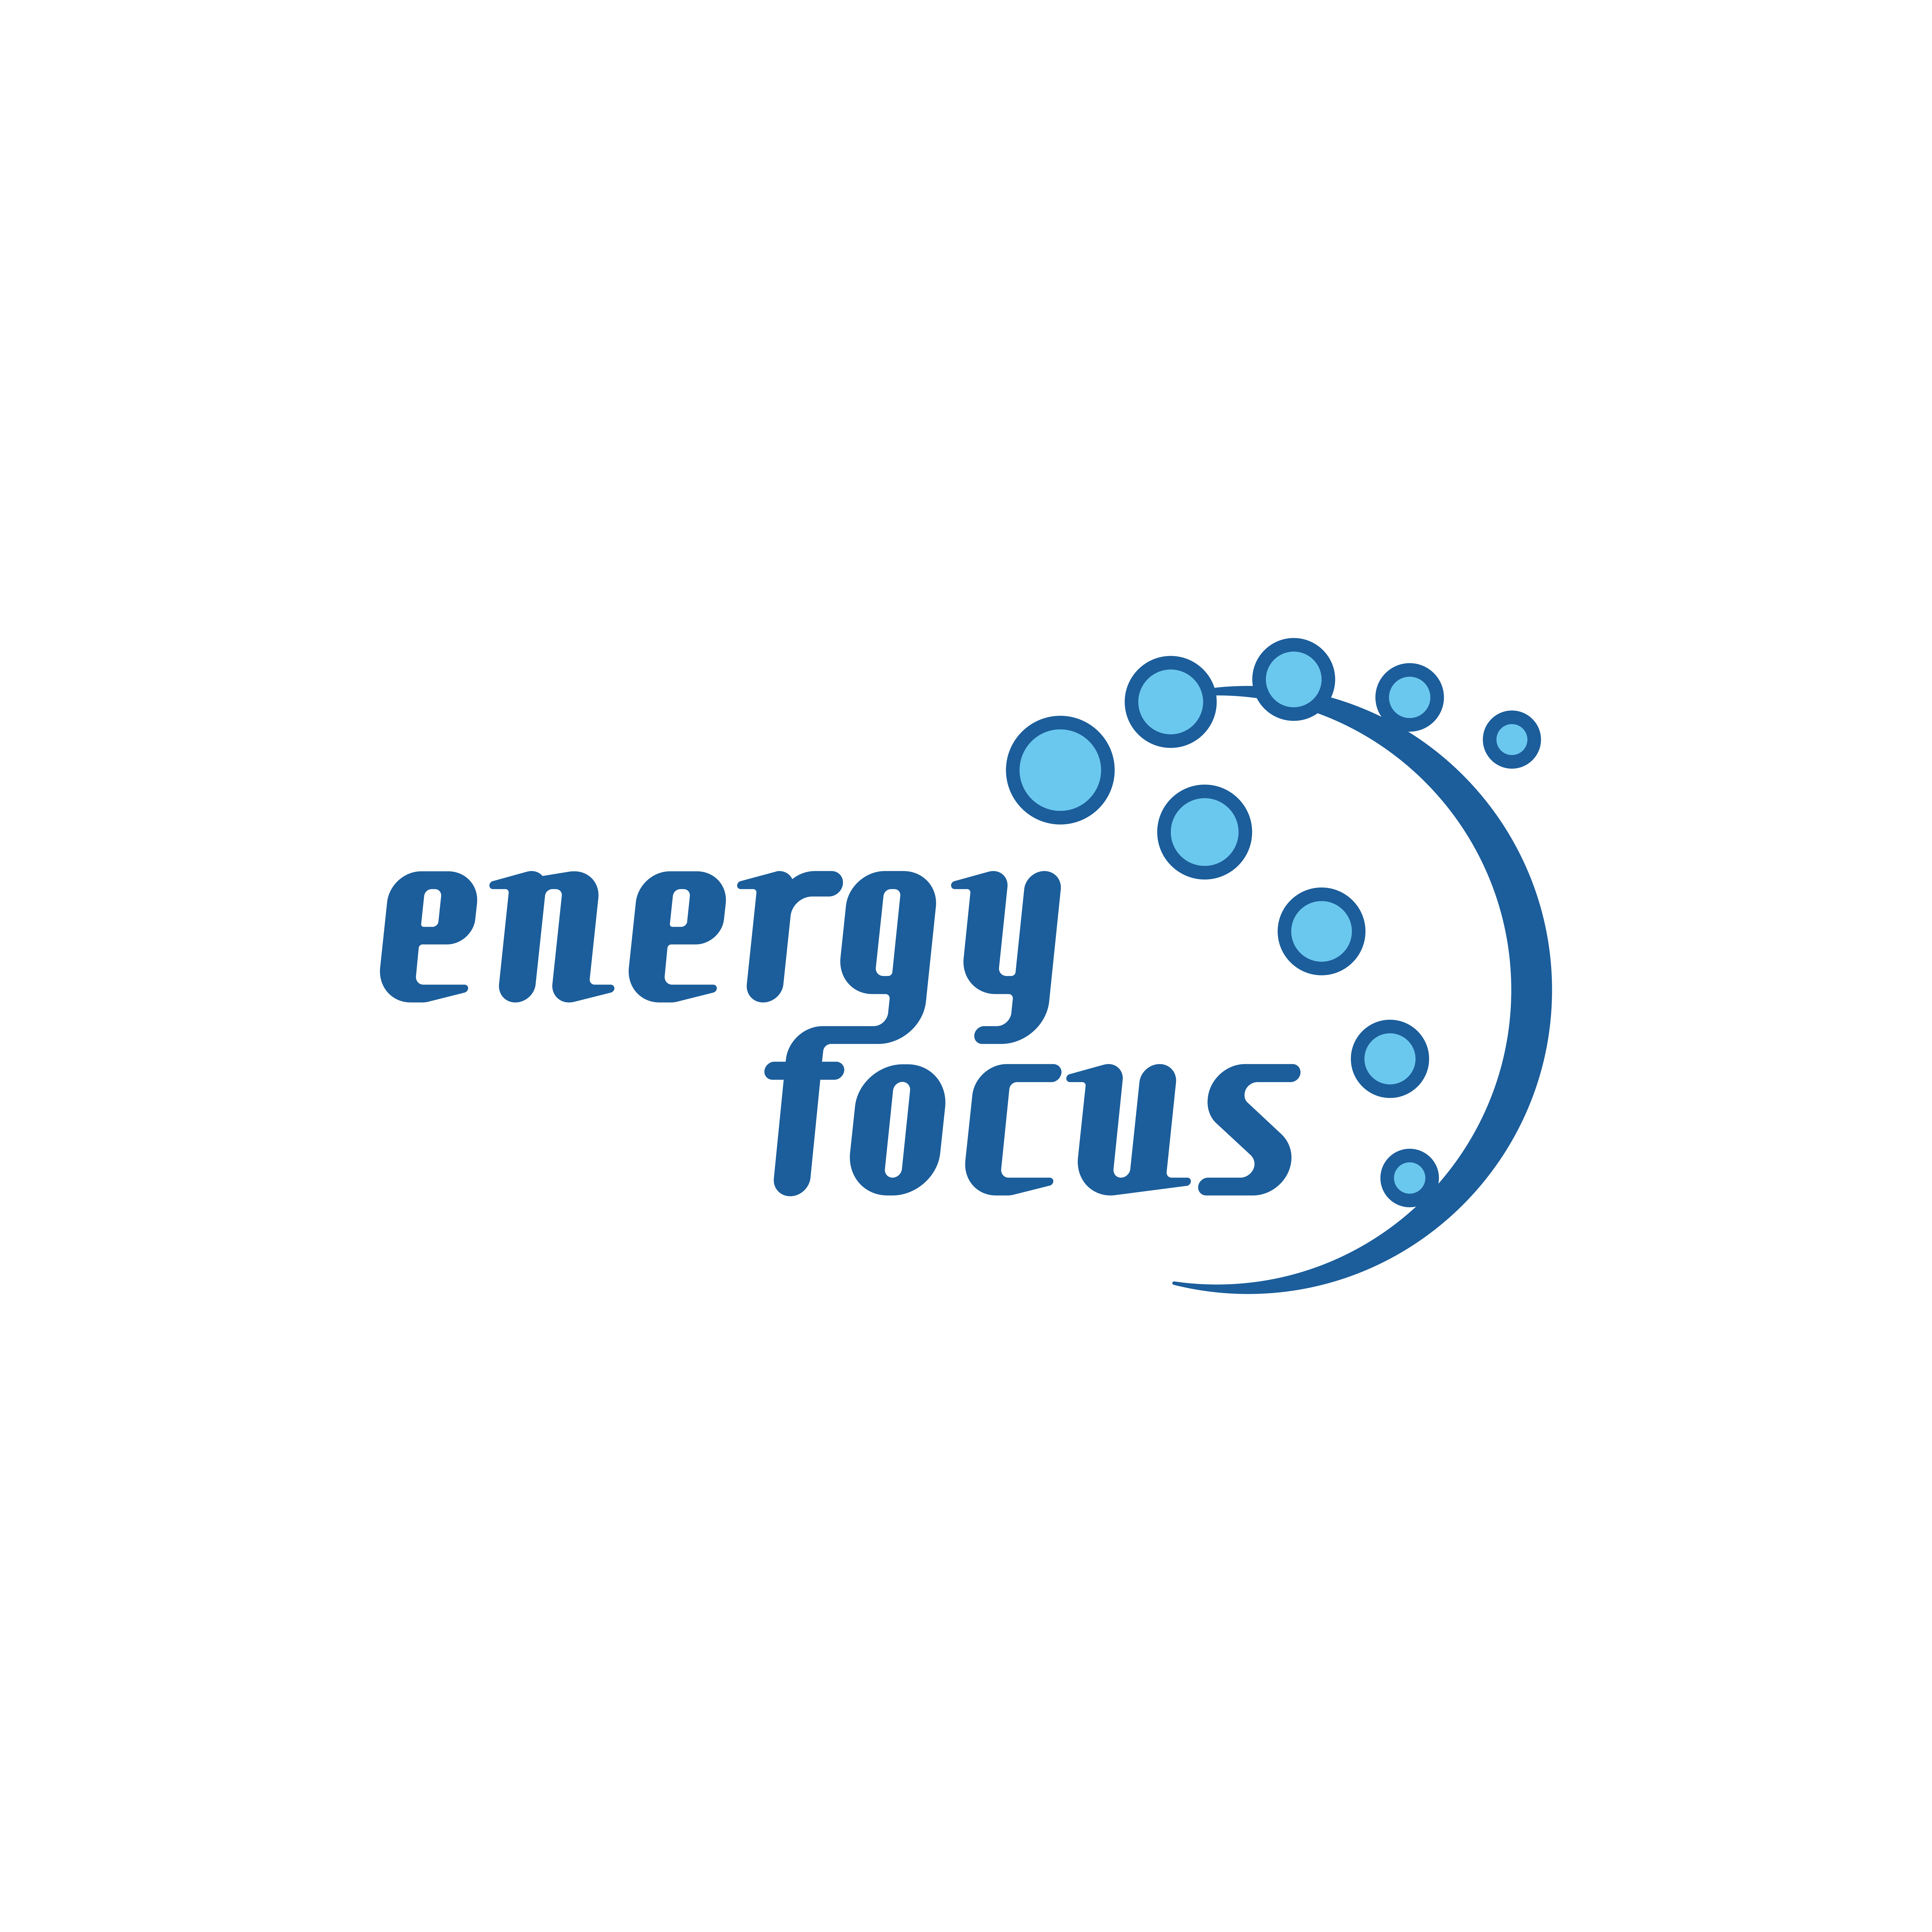 Energyfocus Pty Ltd - Stirling, SA 5152 - (08) 8339 7928 | ShowMeLocal.com